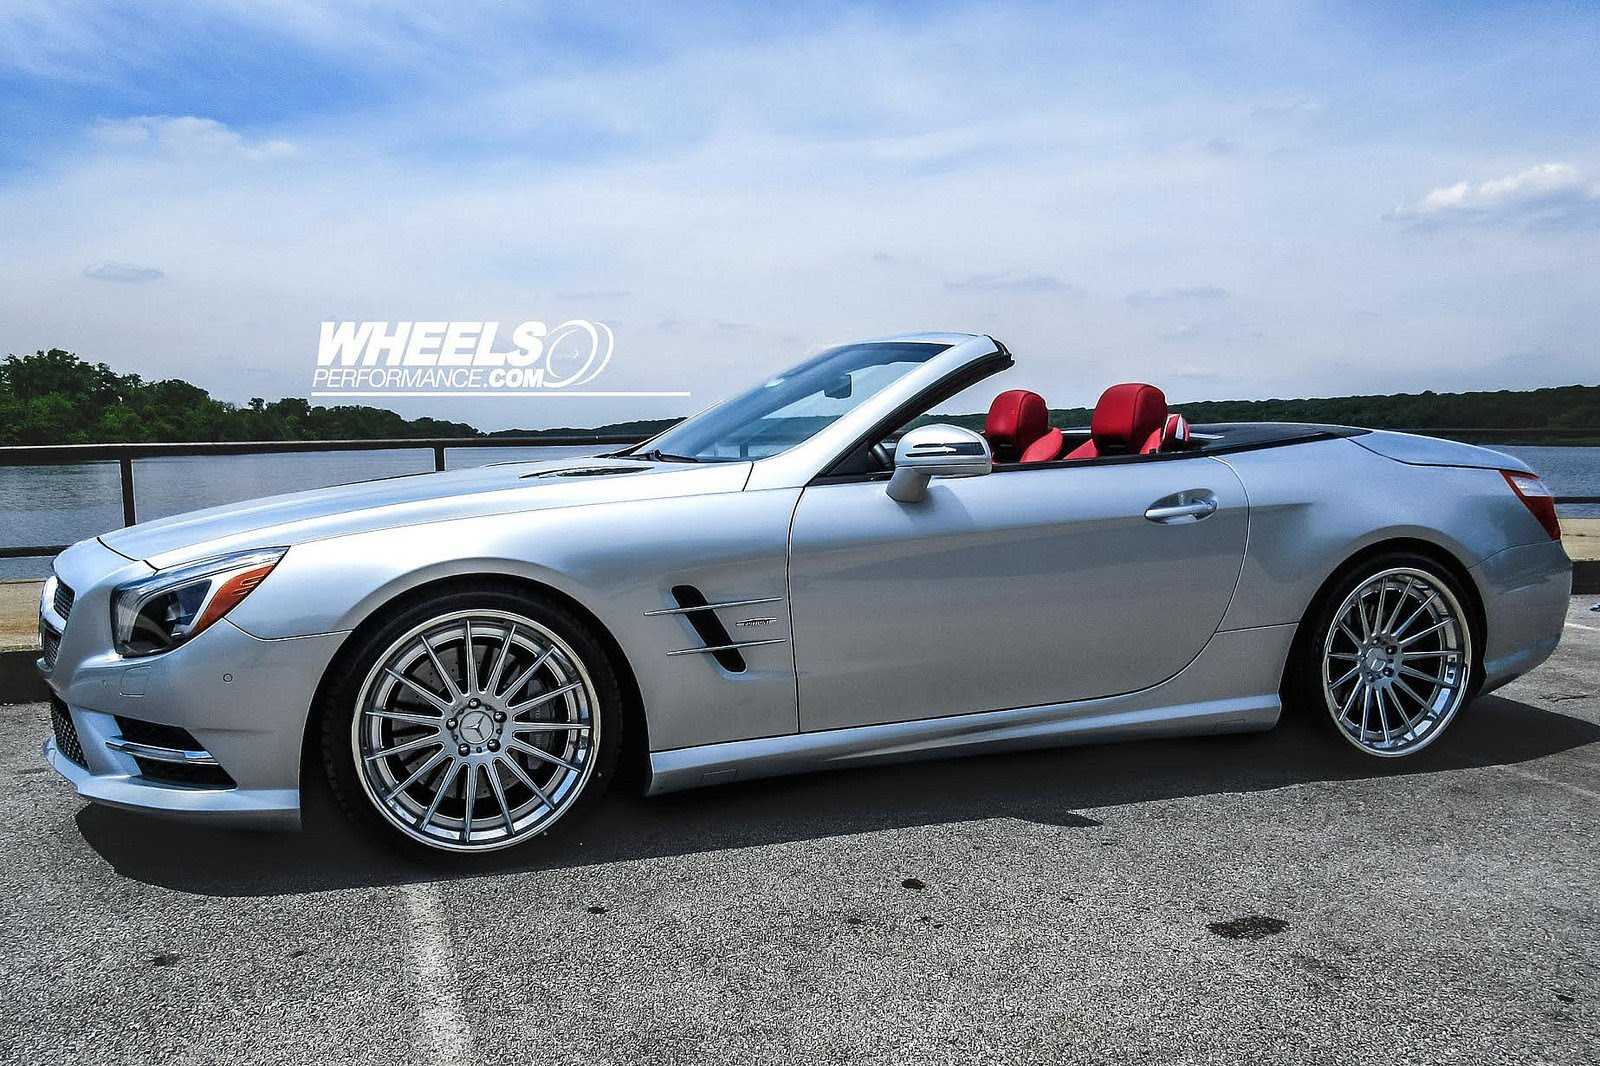 Related Keywords & Suggestions for 2007 sl550 wheels